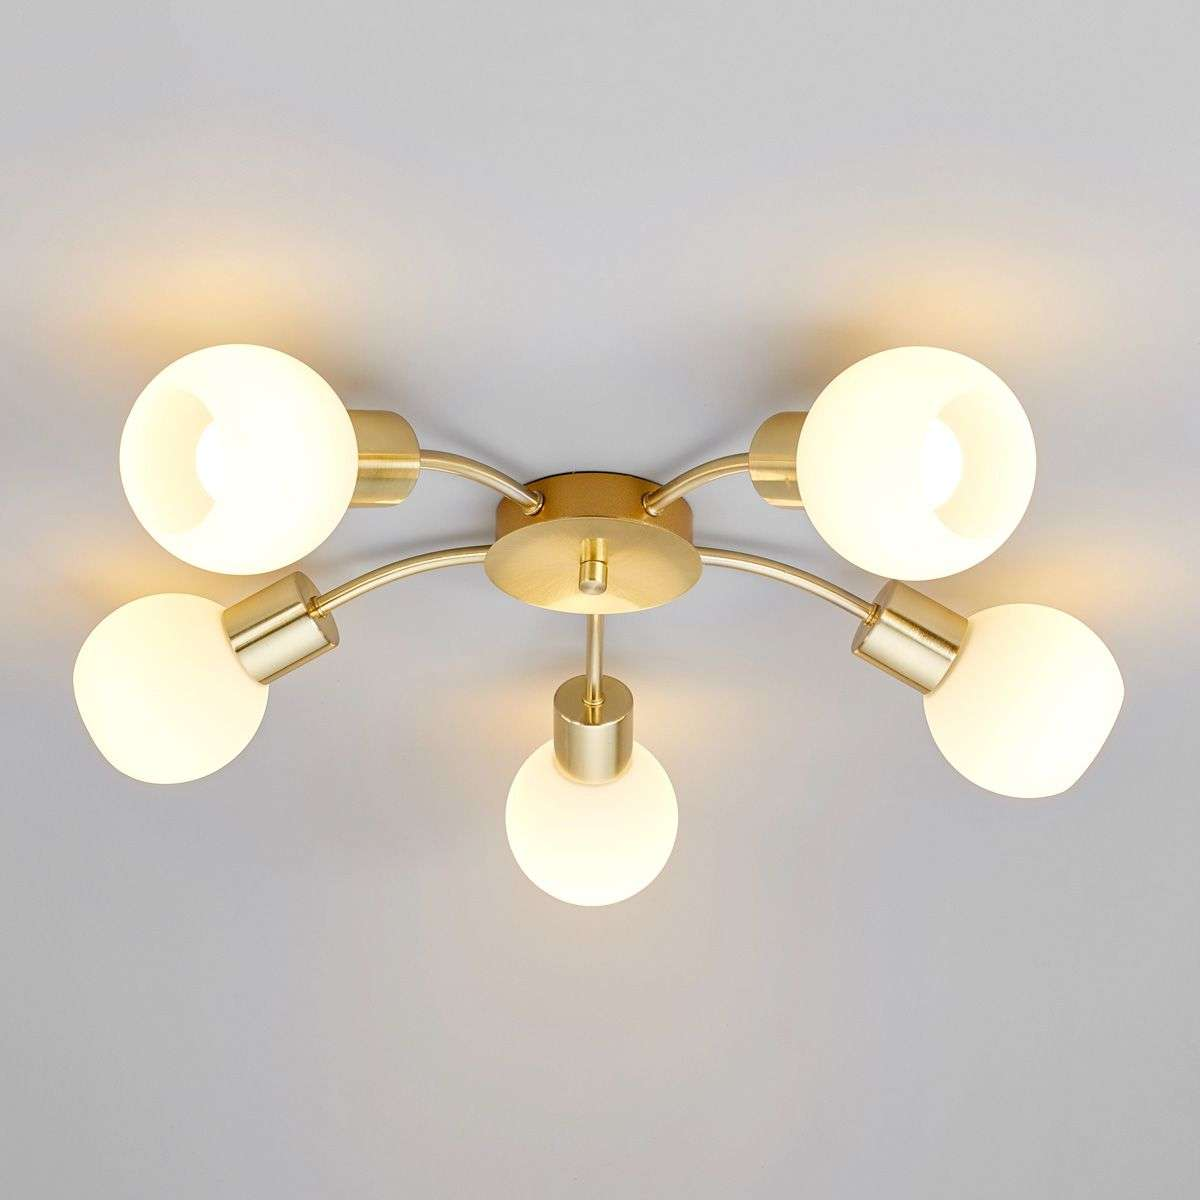 Elaina led ceiling light in brass 5 bulb lights elaina led ceiling light in brass 5 bulb aloadofball Choice Image